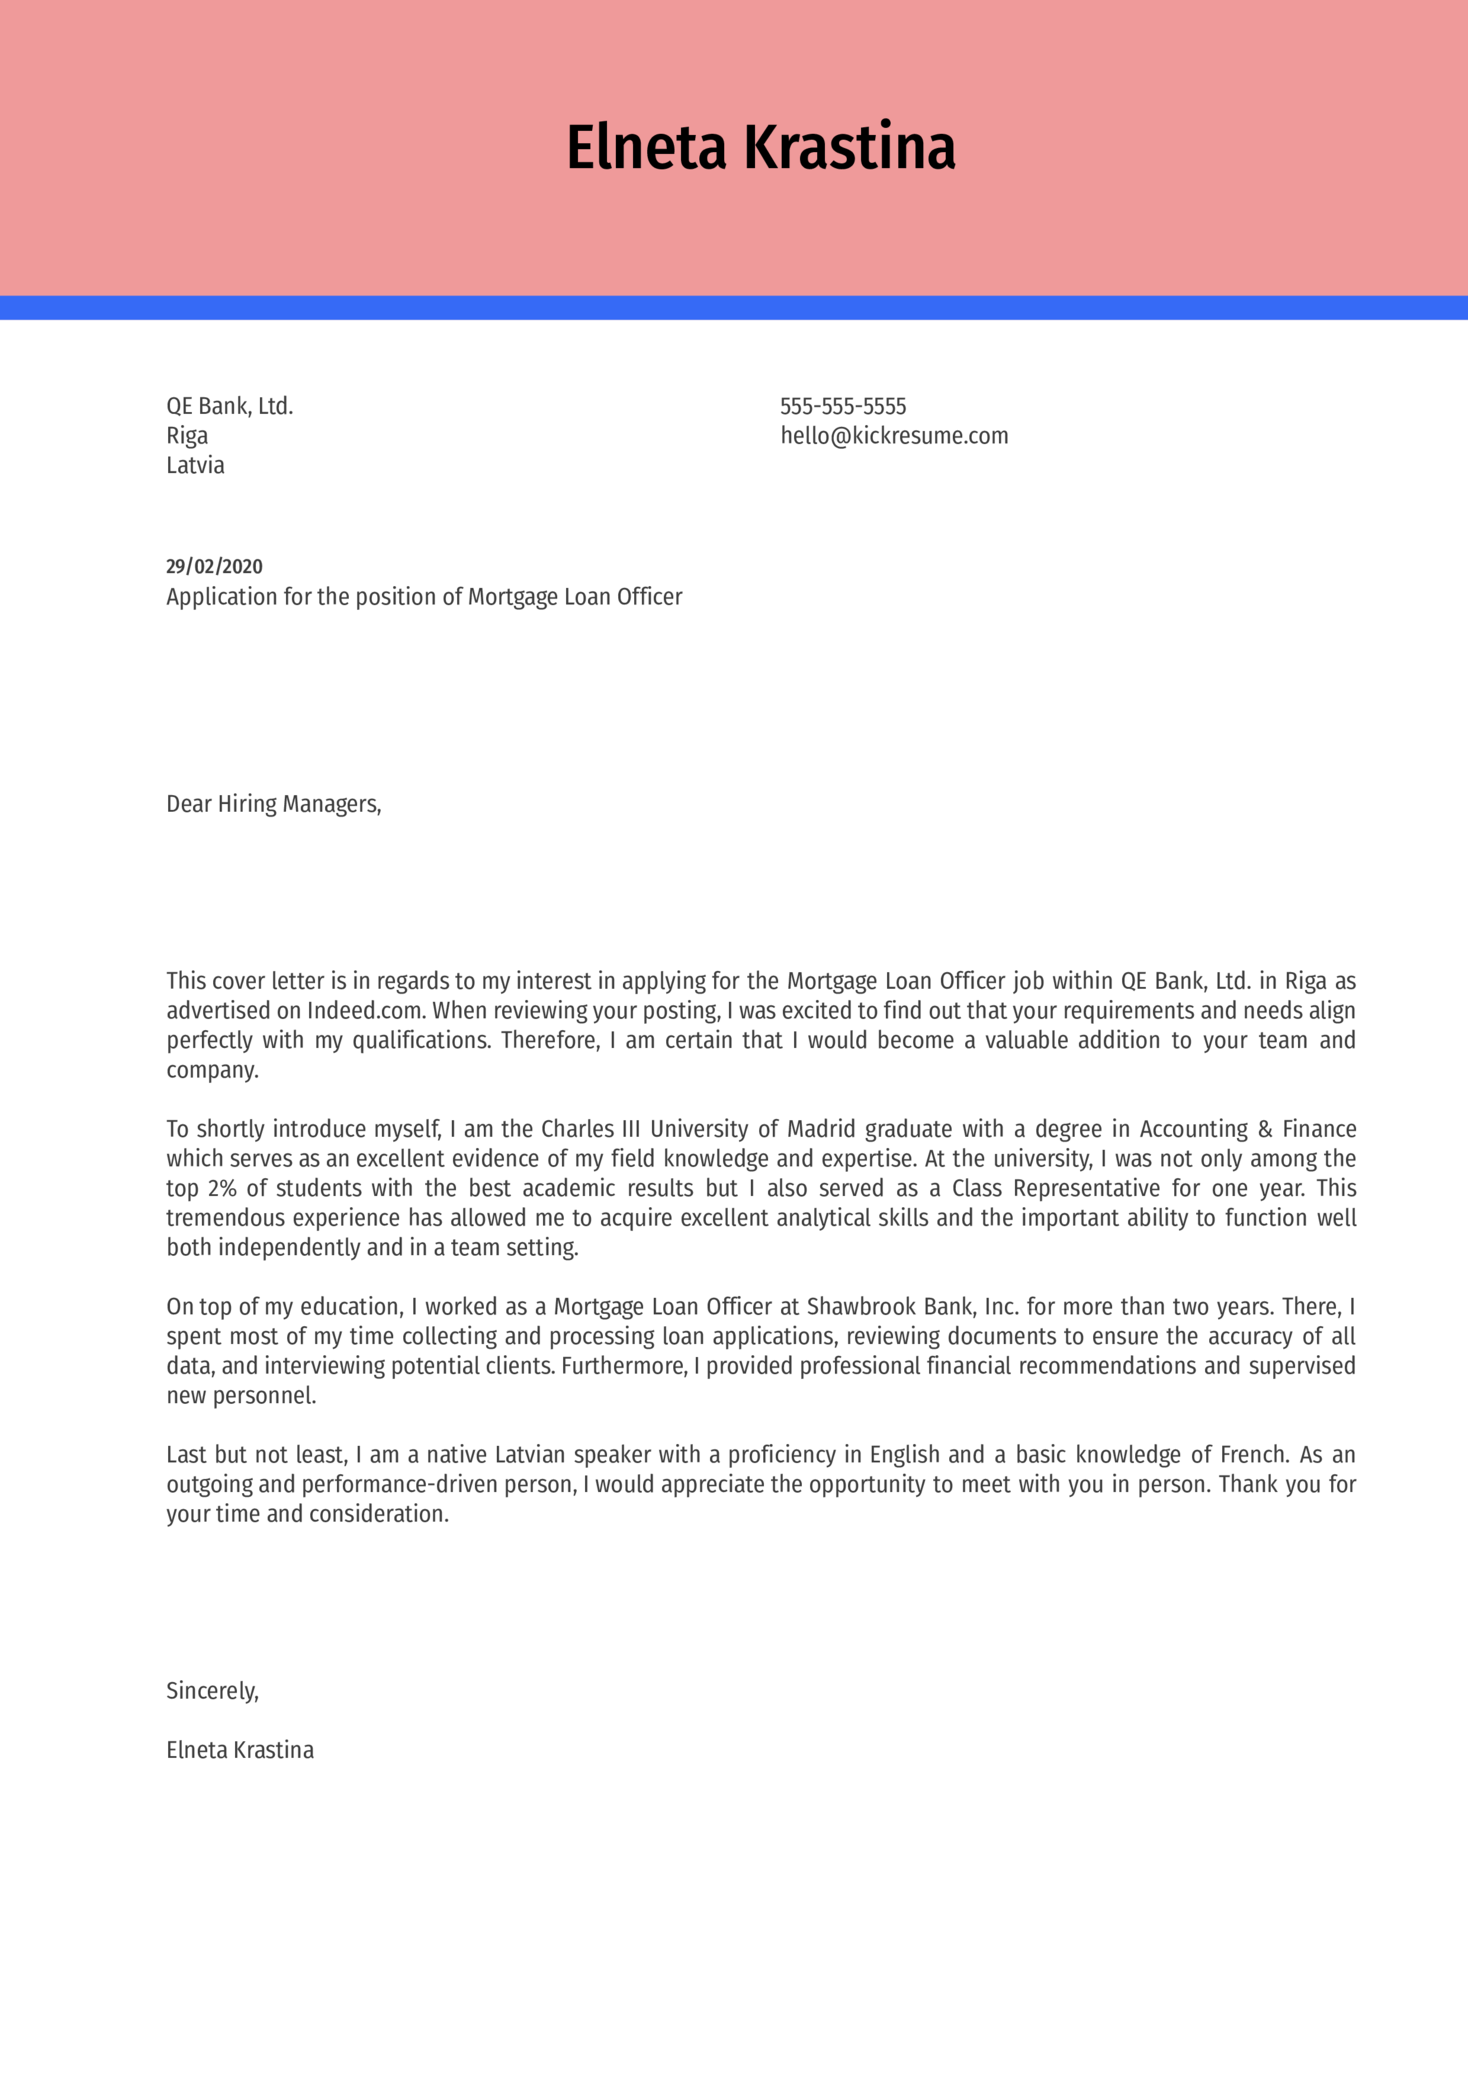 Mortgage Loan Officer Cover Letter Example